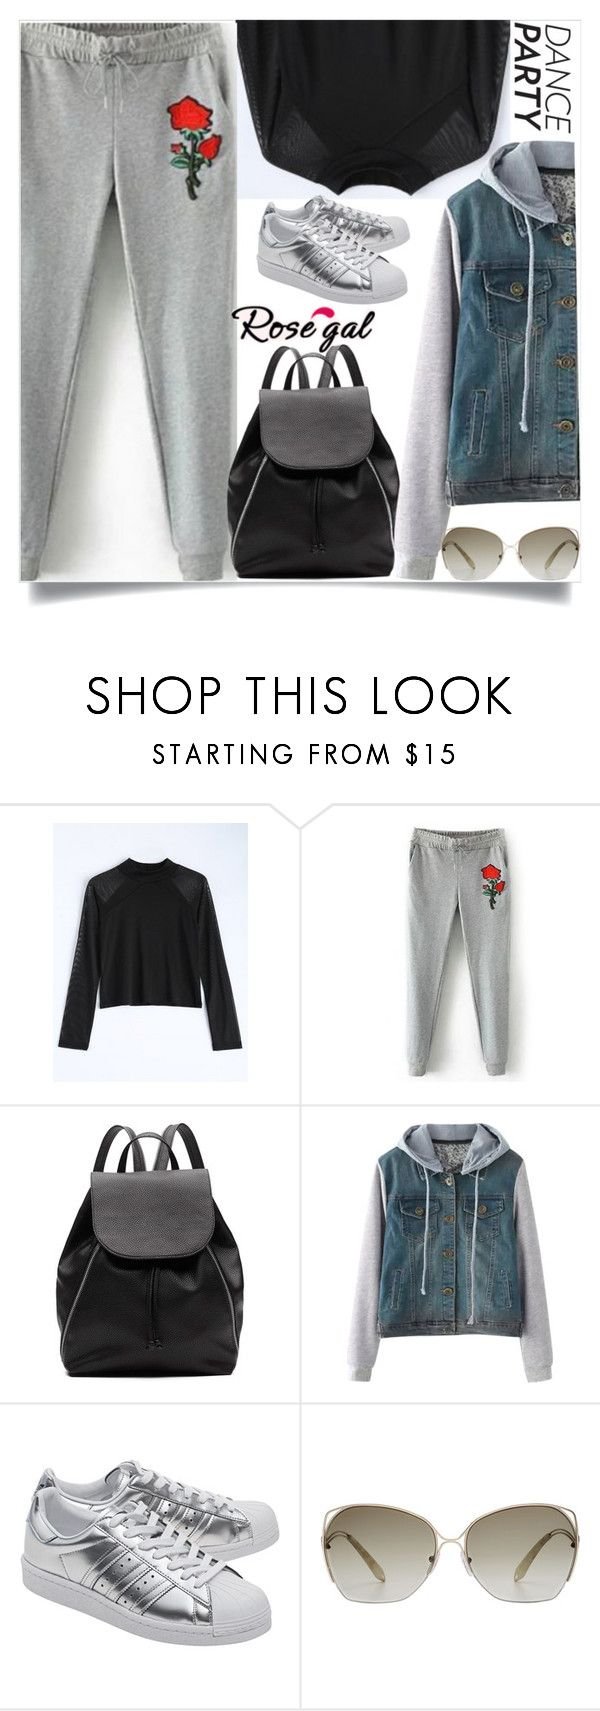 """Rosegal  54"" by dzenanlevic99 ❤ liked on Polyvore featuring Witchery, adidas Originals and Victoria Beckham"